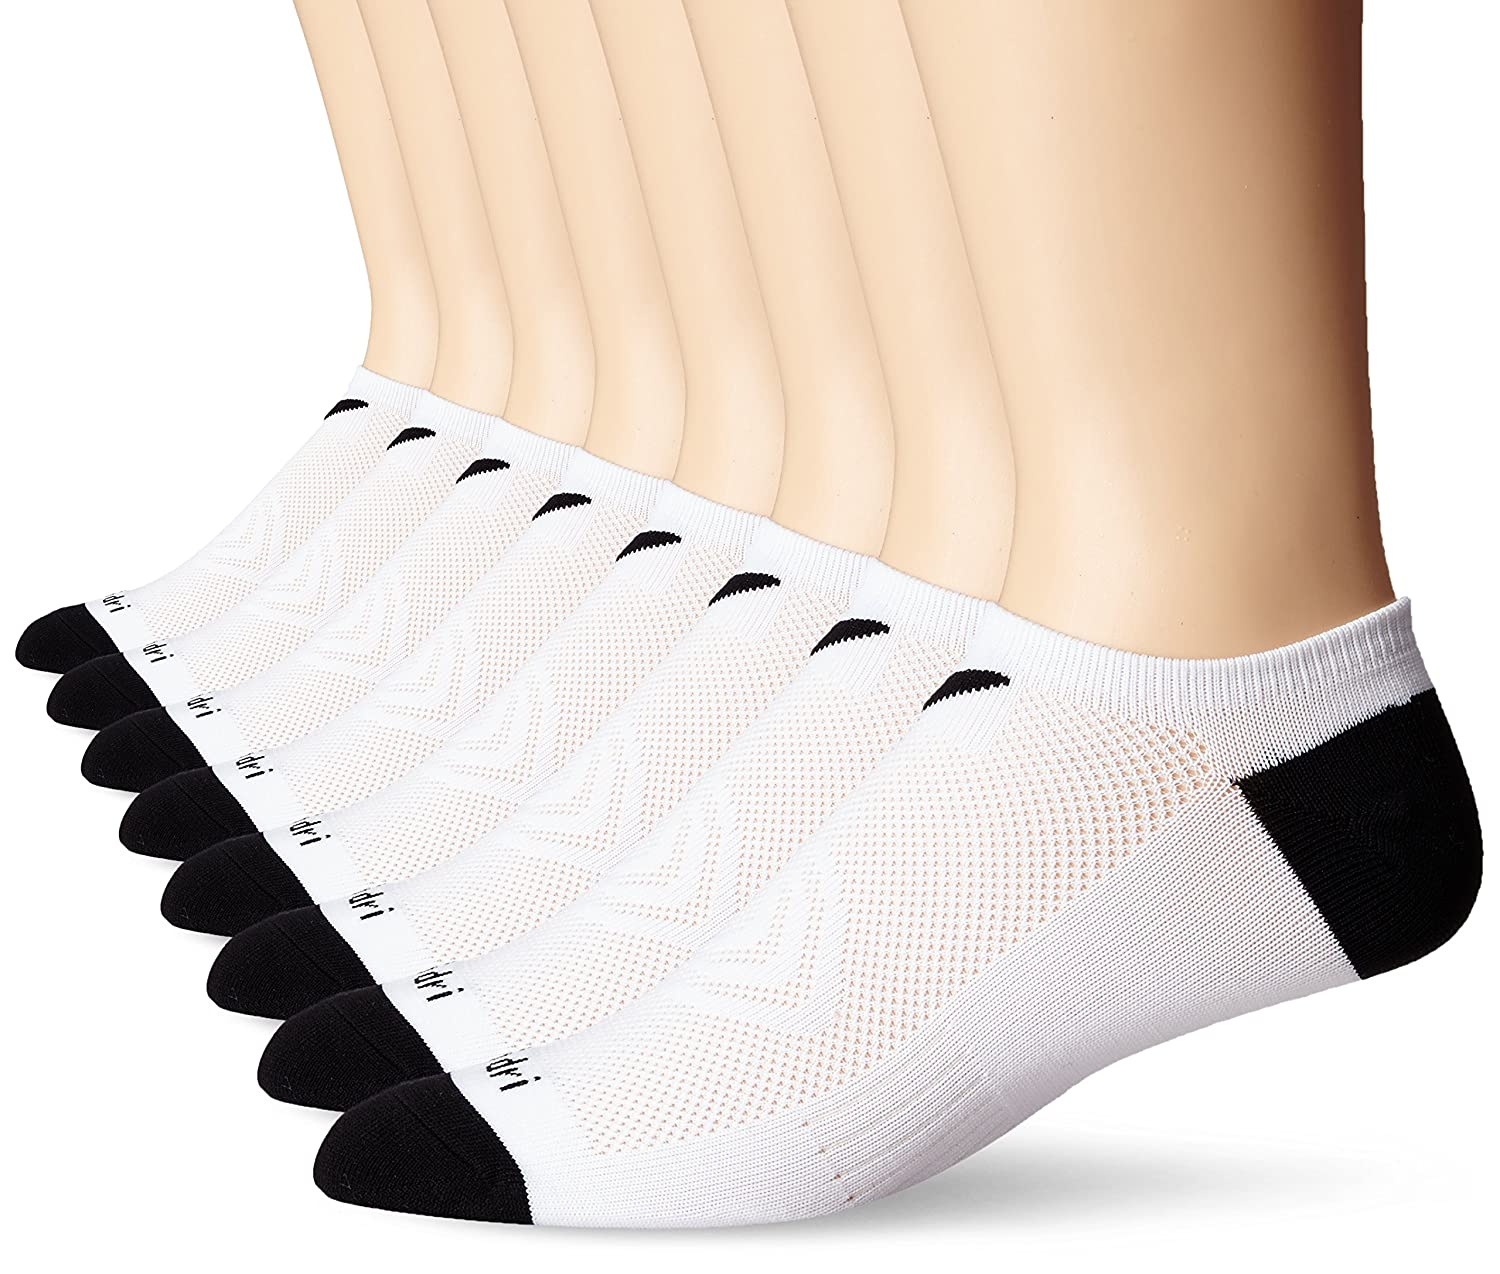 Callaway Men's 8 Pack Tech No-Show Sock  цена